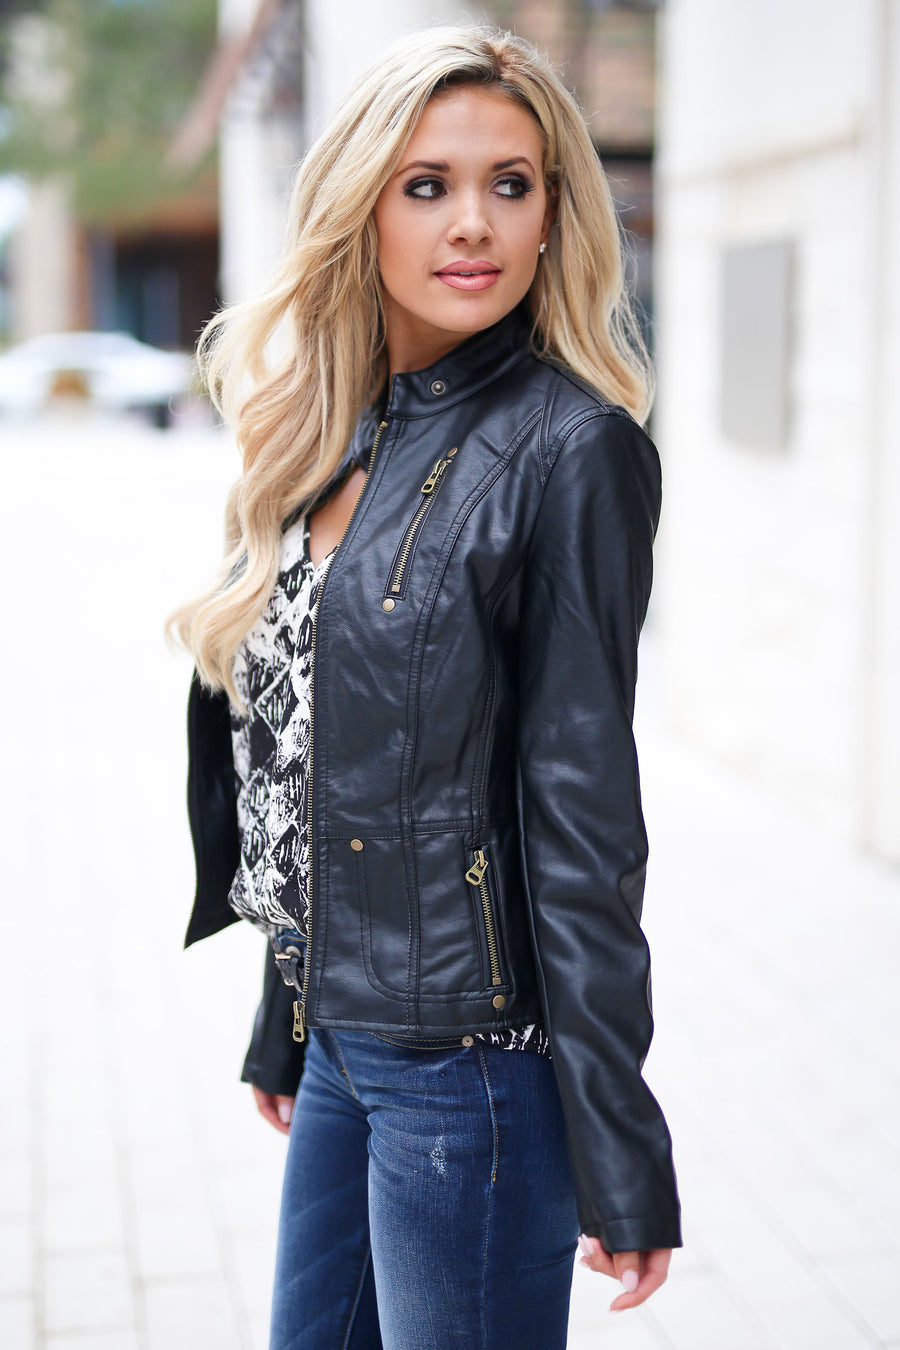 Ready For Take Off Jacket - Black women's leather jacket, zipper, pockets, Closet Candy Boutique 1